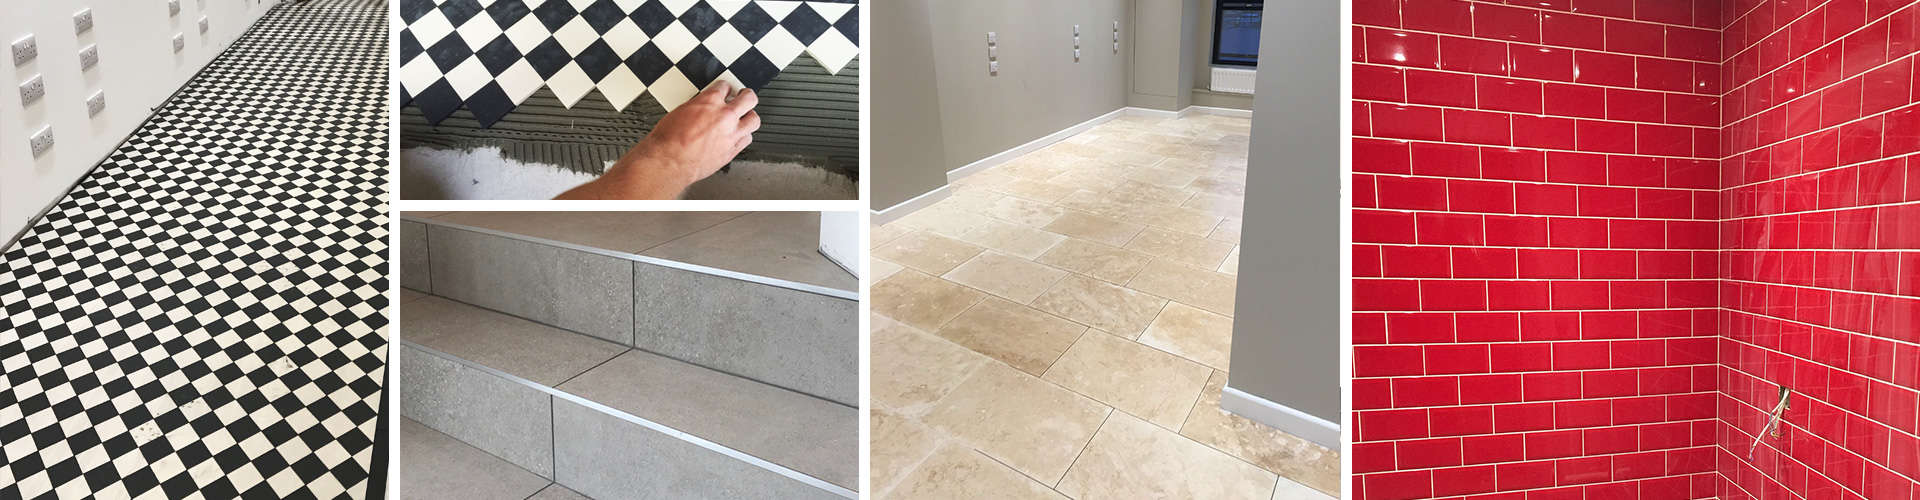 Commercial tiling company oxford